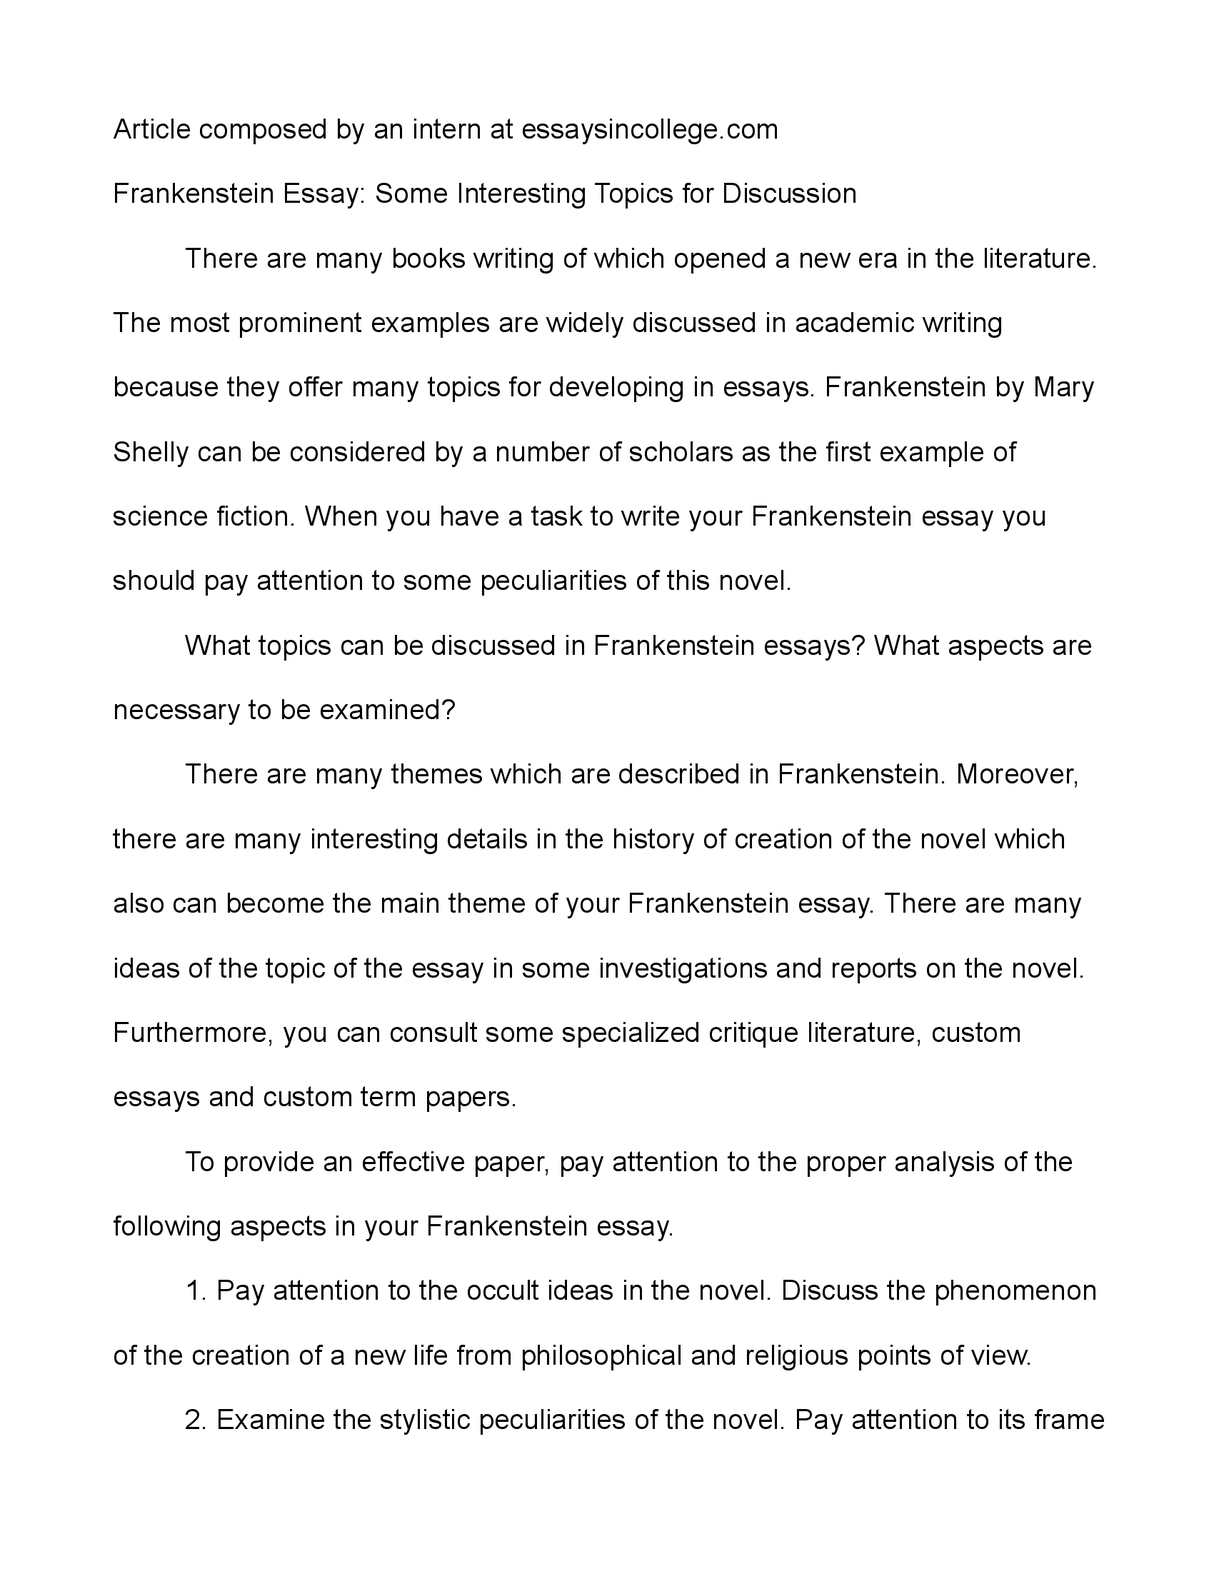 deductive essay topics essay topics frankenstein essay topics  essay topics frankenstein essay topics frankenstein essay topics calamatildecopyo frankenstein essay some interesting topics for discussion